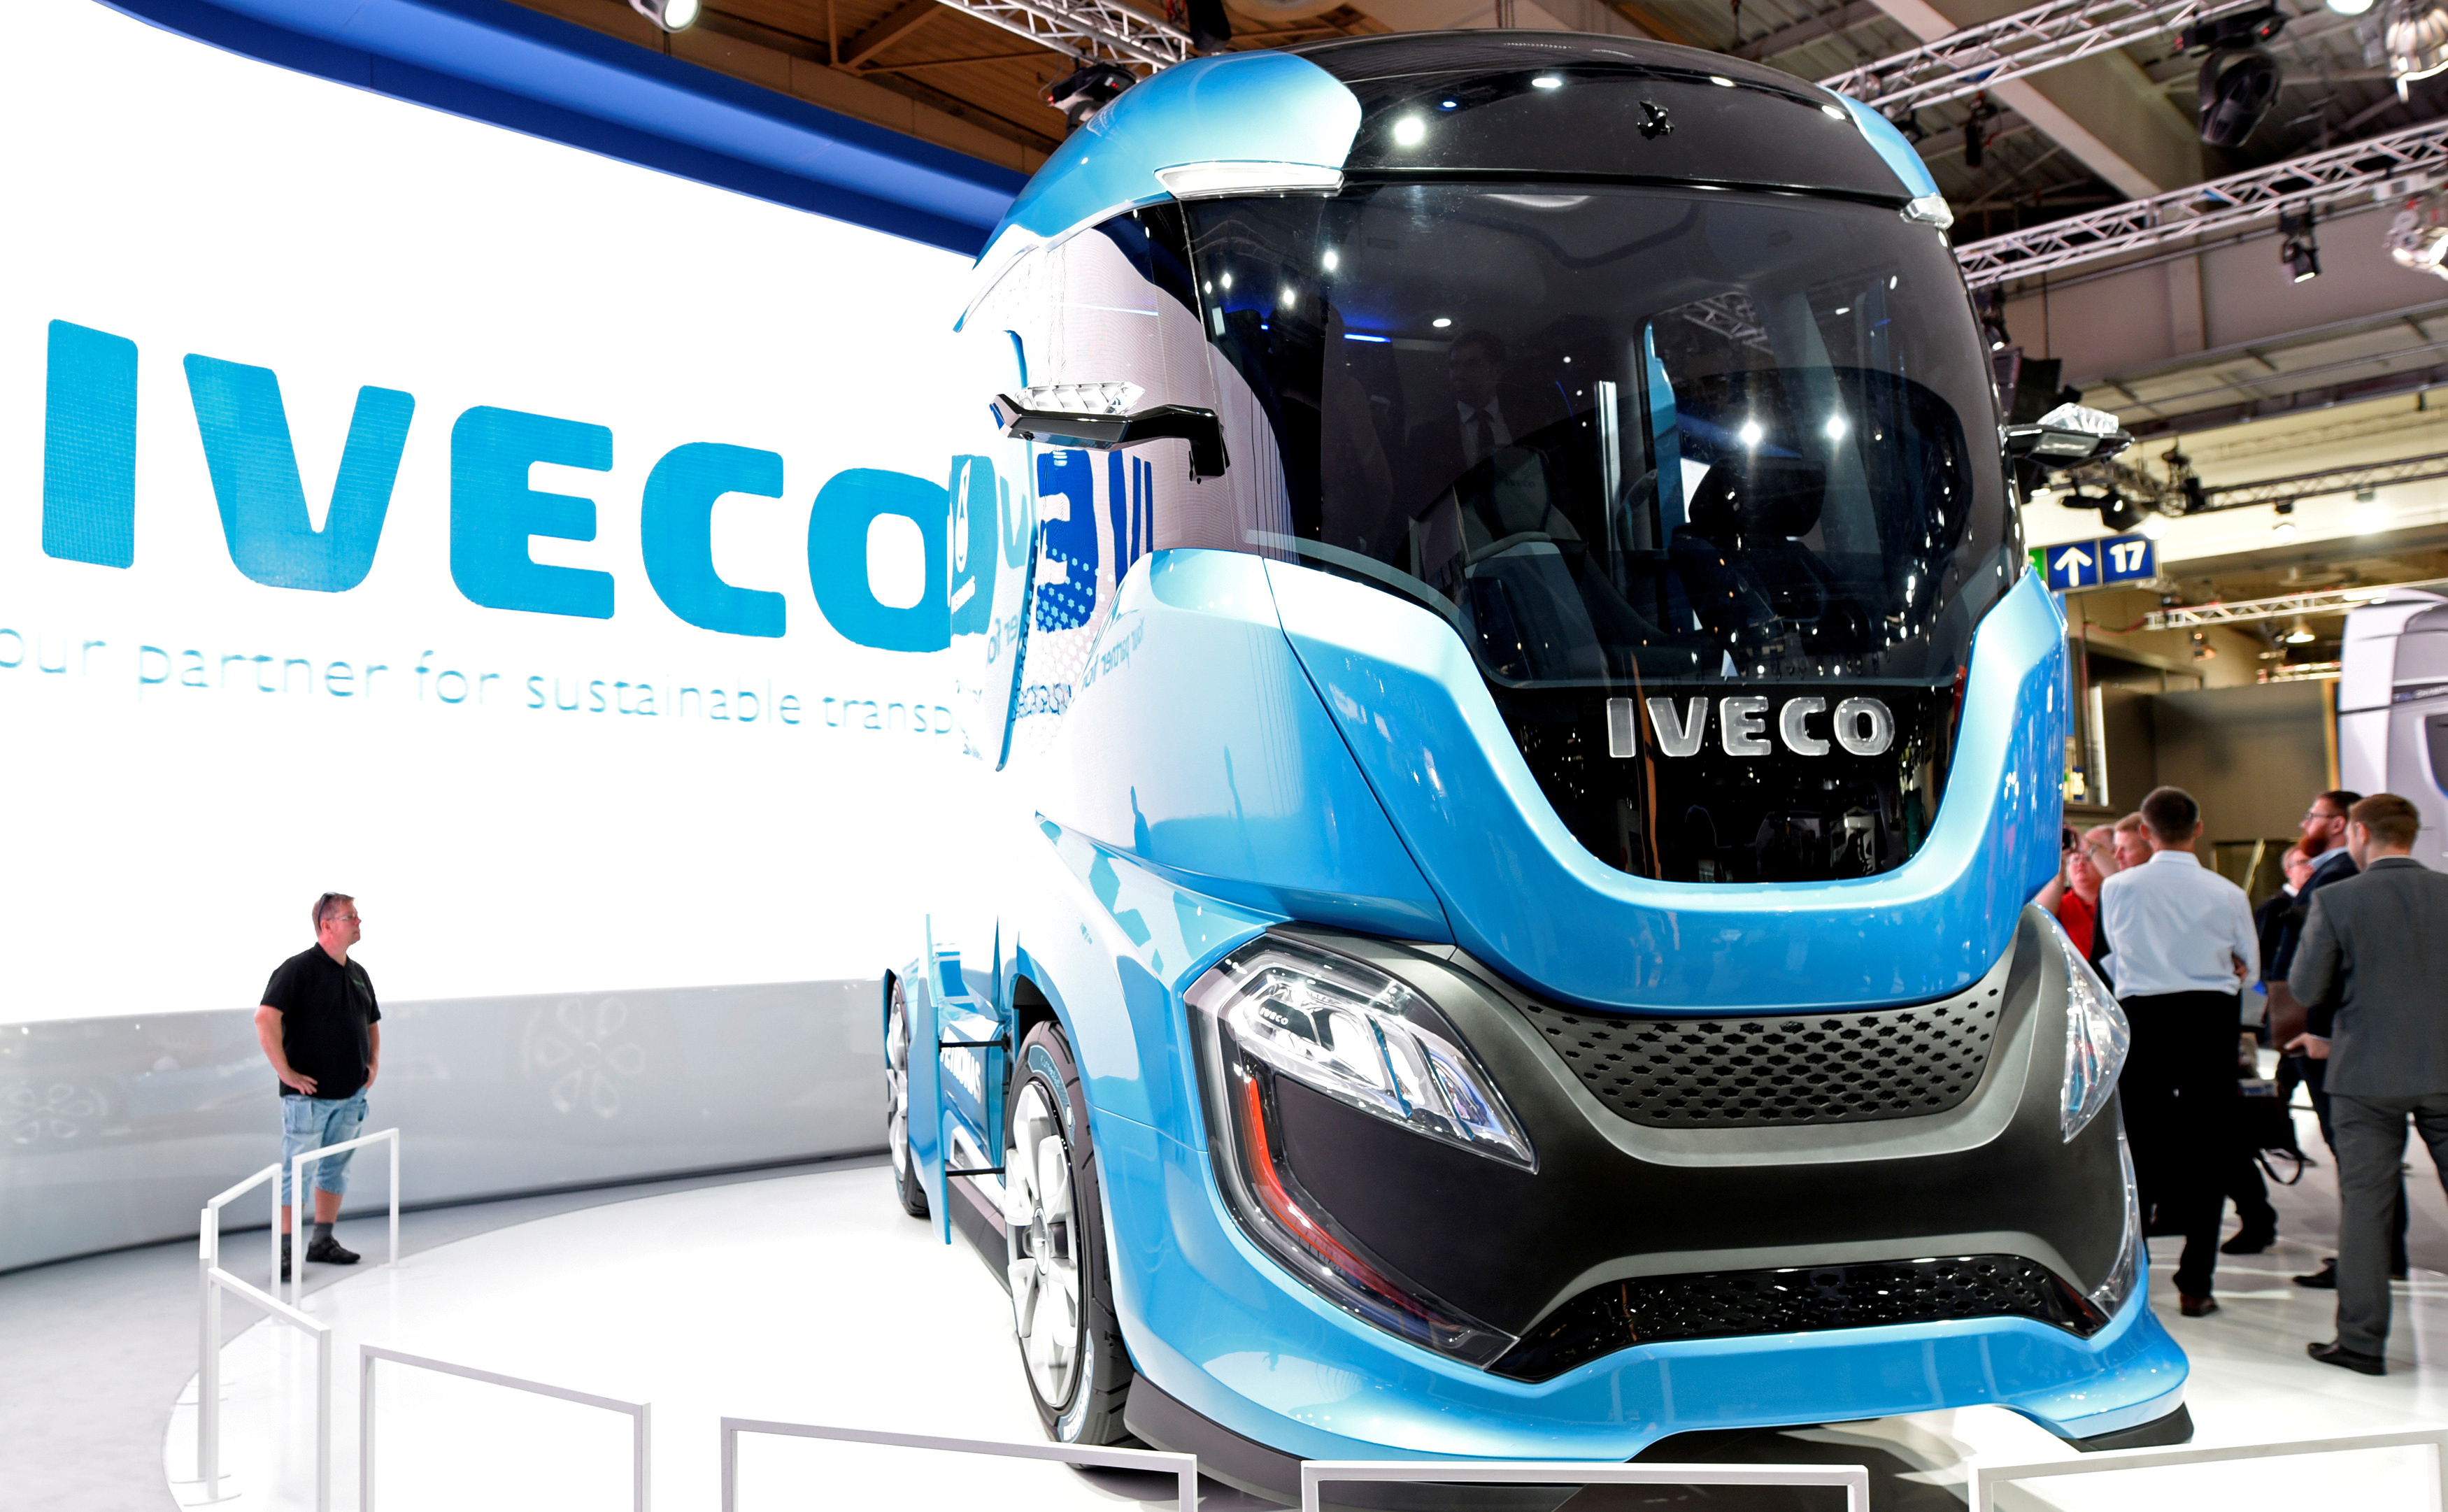 An Iveco truck is seen at the IAA Commercial Vehicles trade show in Hanover, Germany, September 22, 2016.  REUTERS/Fabian Bimmer/File Photo